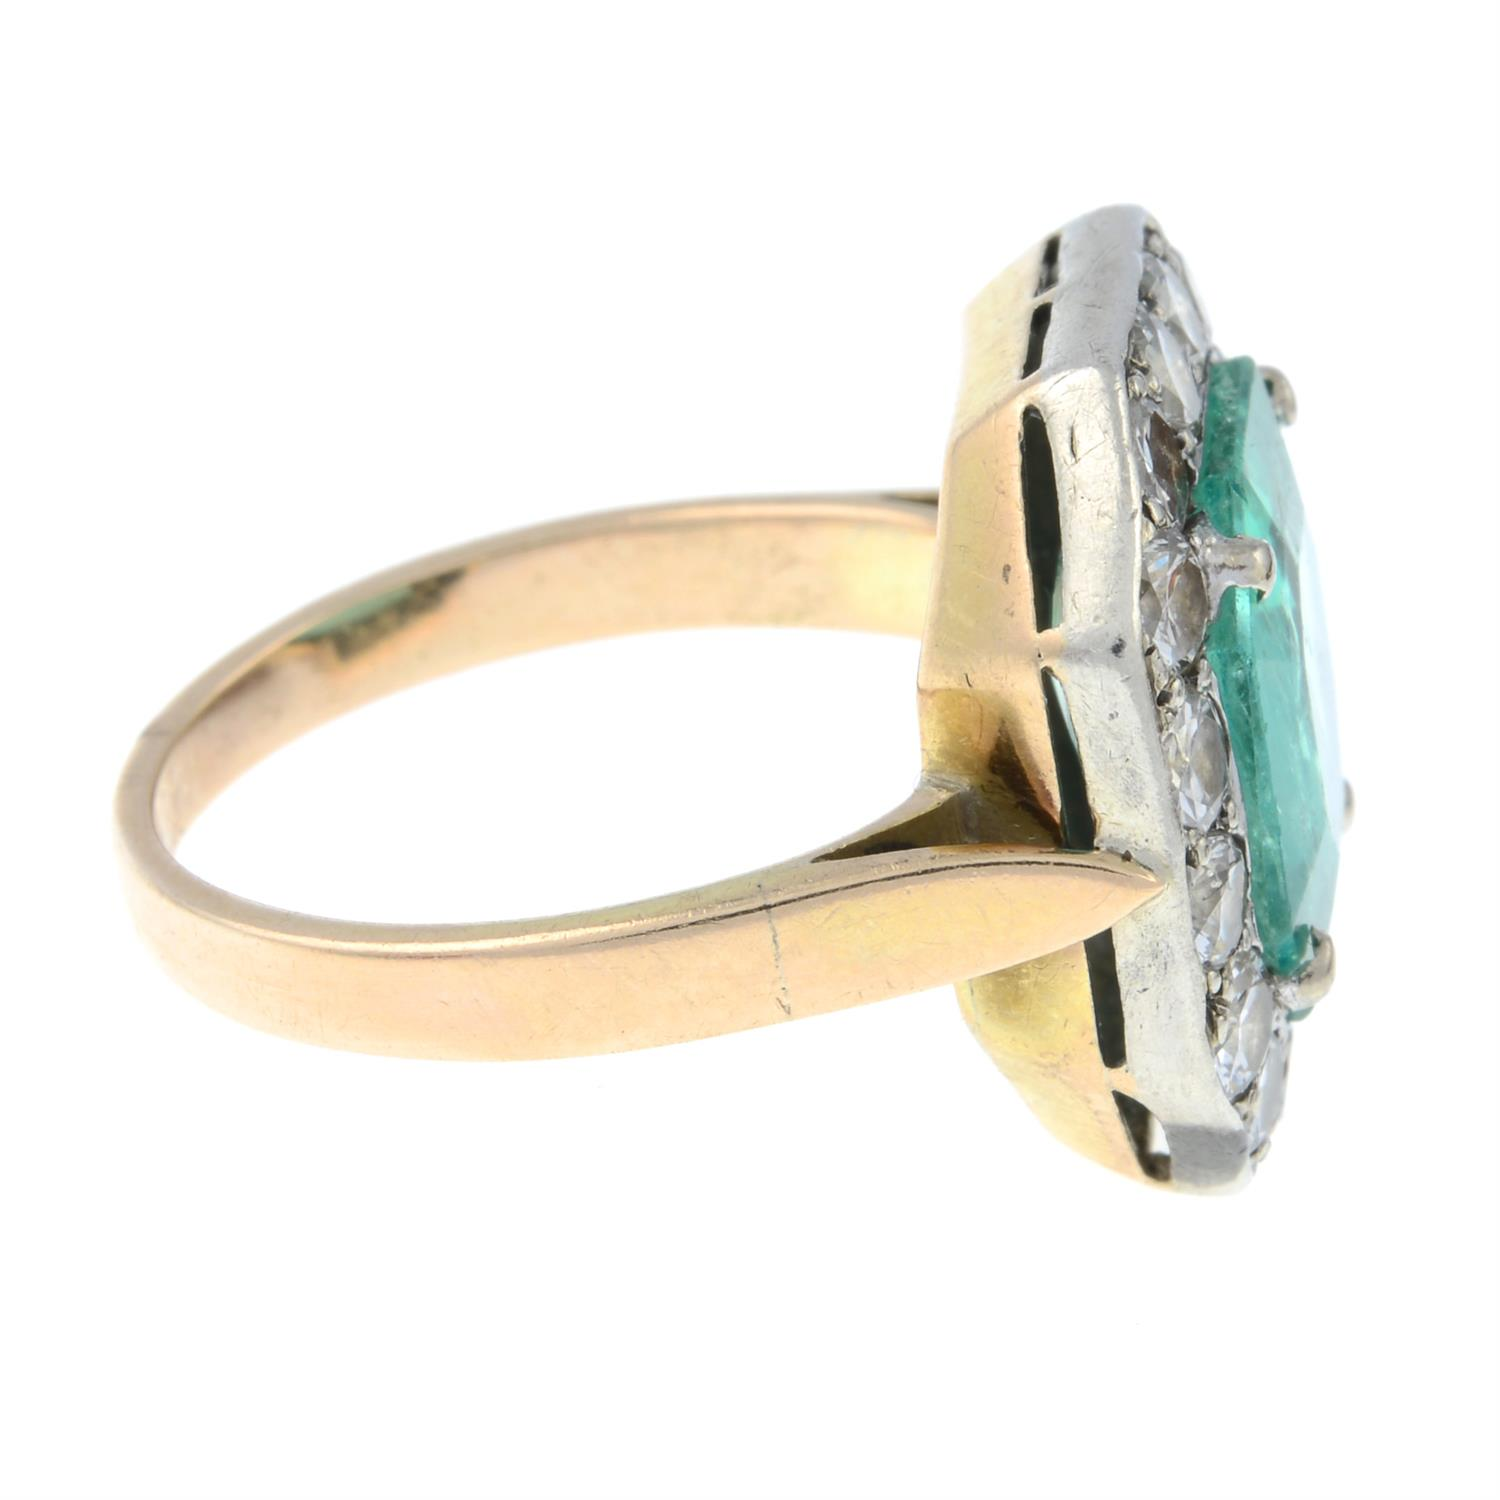 A mid 20th century silver and gold, emerald and brilliant-cut diamond ring. - Image 4 of 6